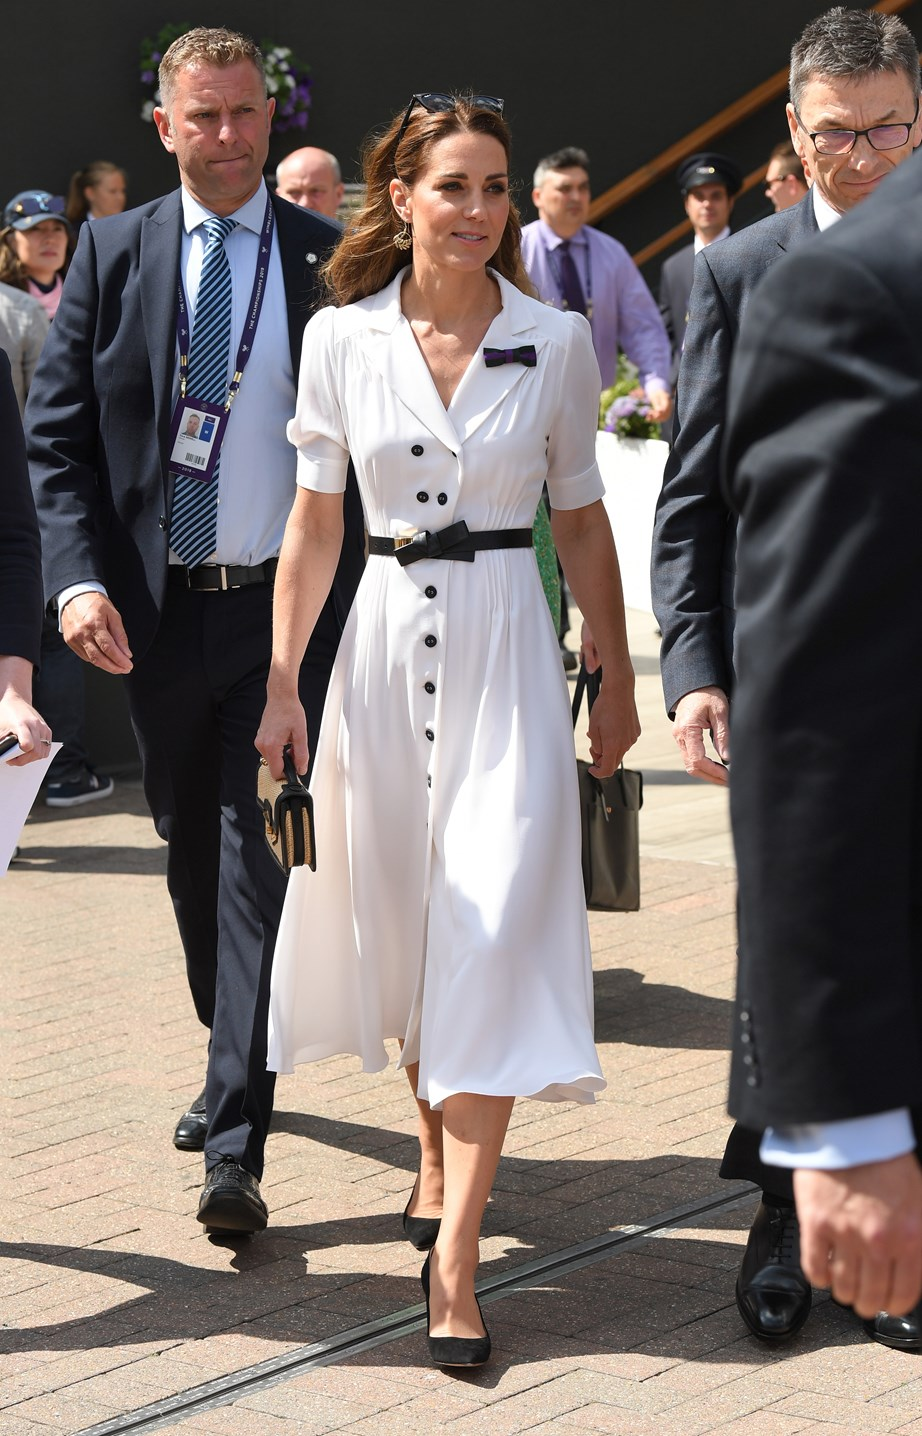 Kate looked gorgeous in a chic white shirt dress accessories with a black belt, heels and sunglasses. *(Image: Getty)*